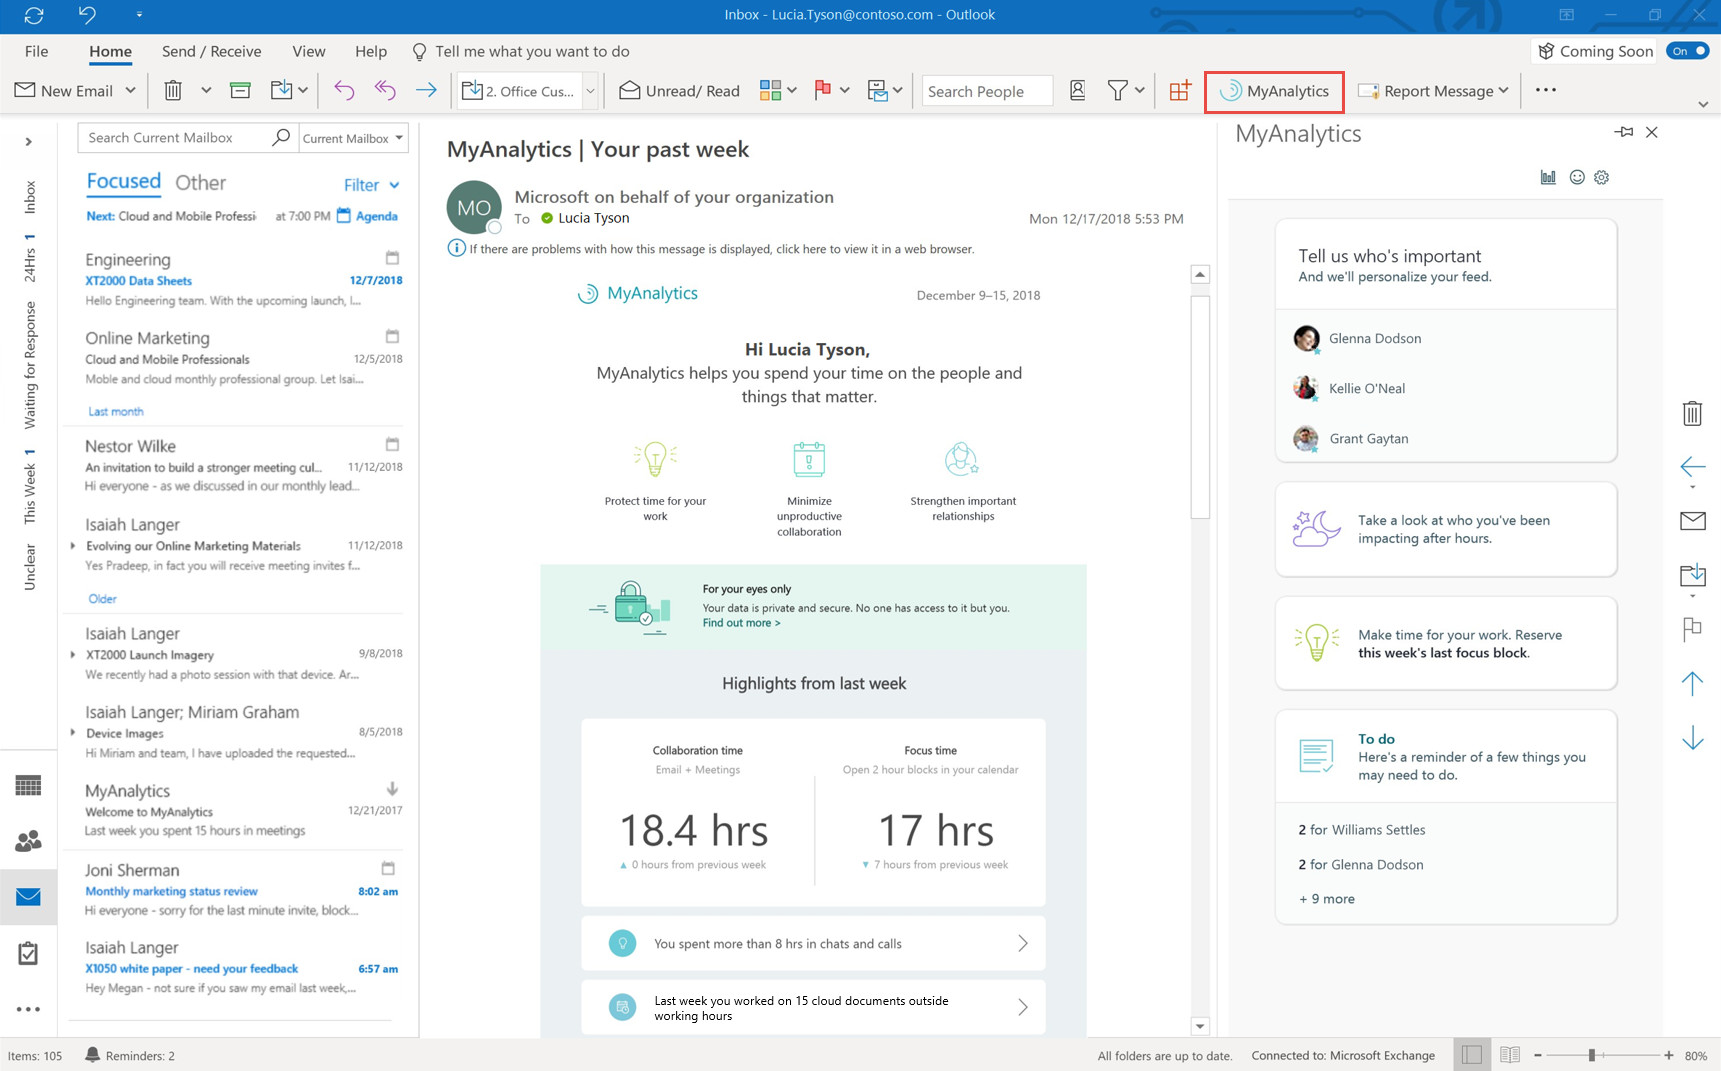 MyAnalytics is now available on Office 365 and Microsoft 365